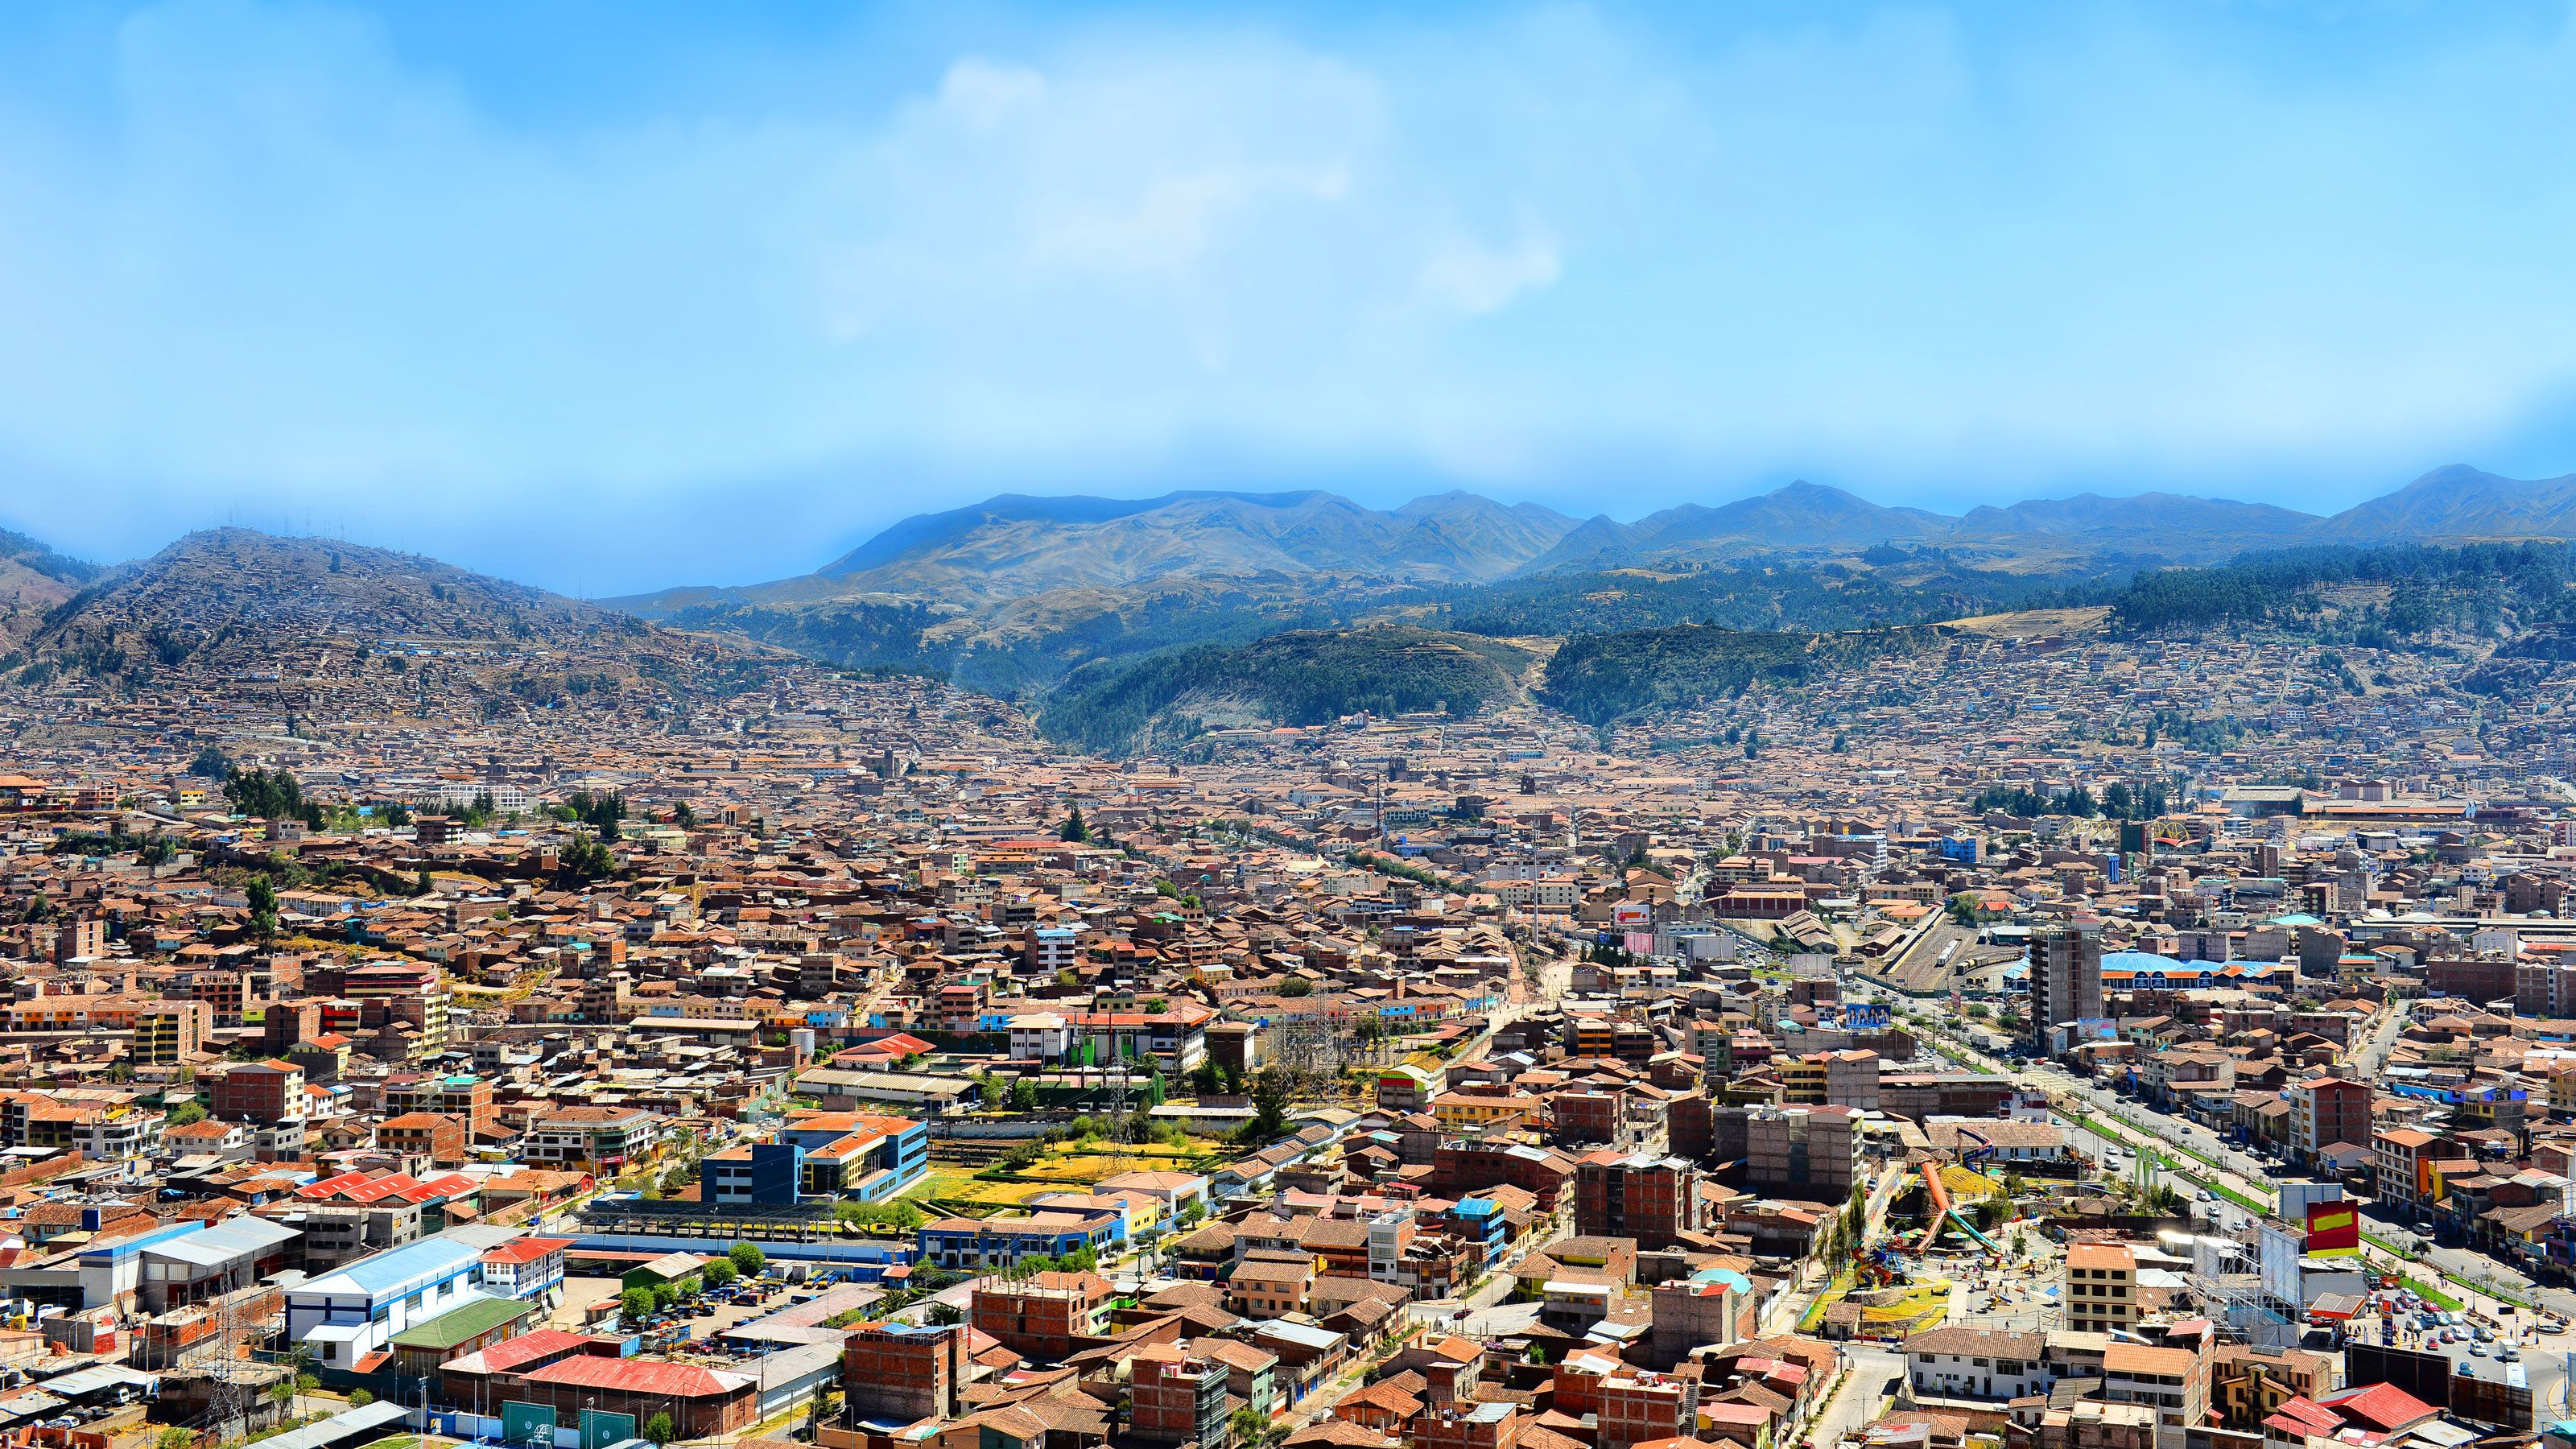 Panoramic shot of the city of Cusco, Peru